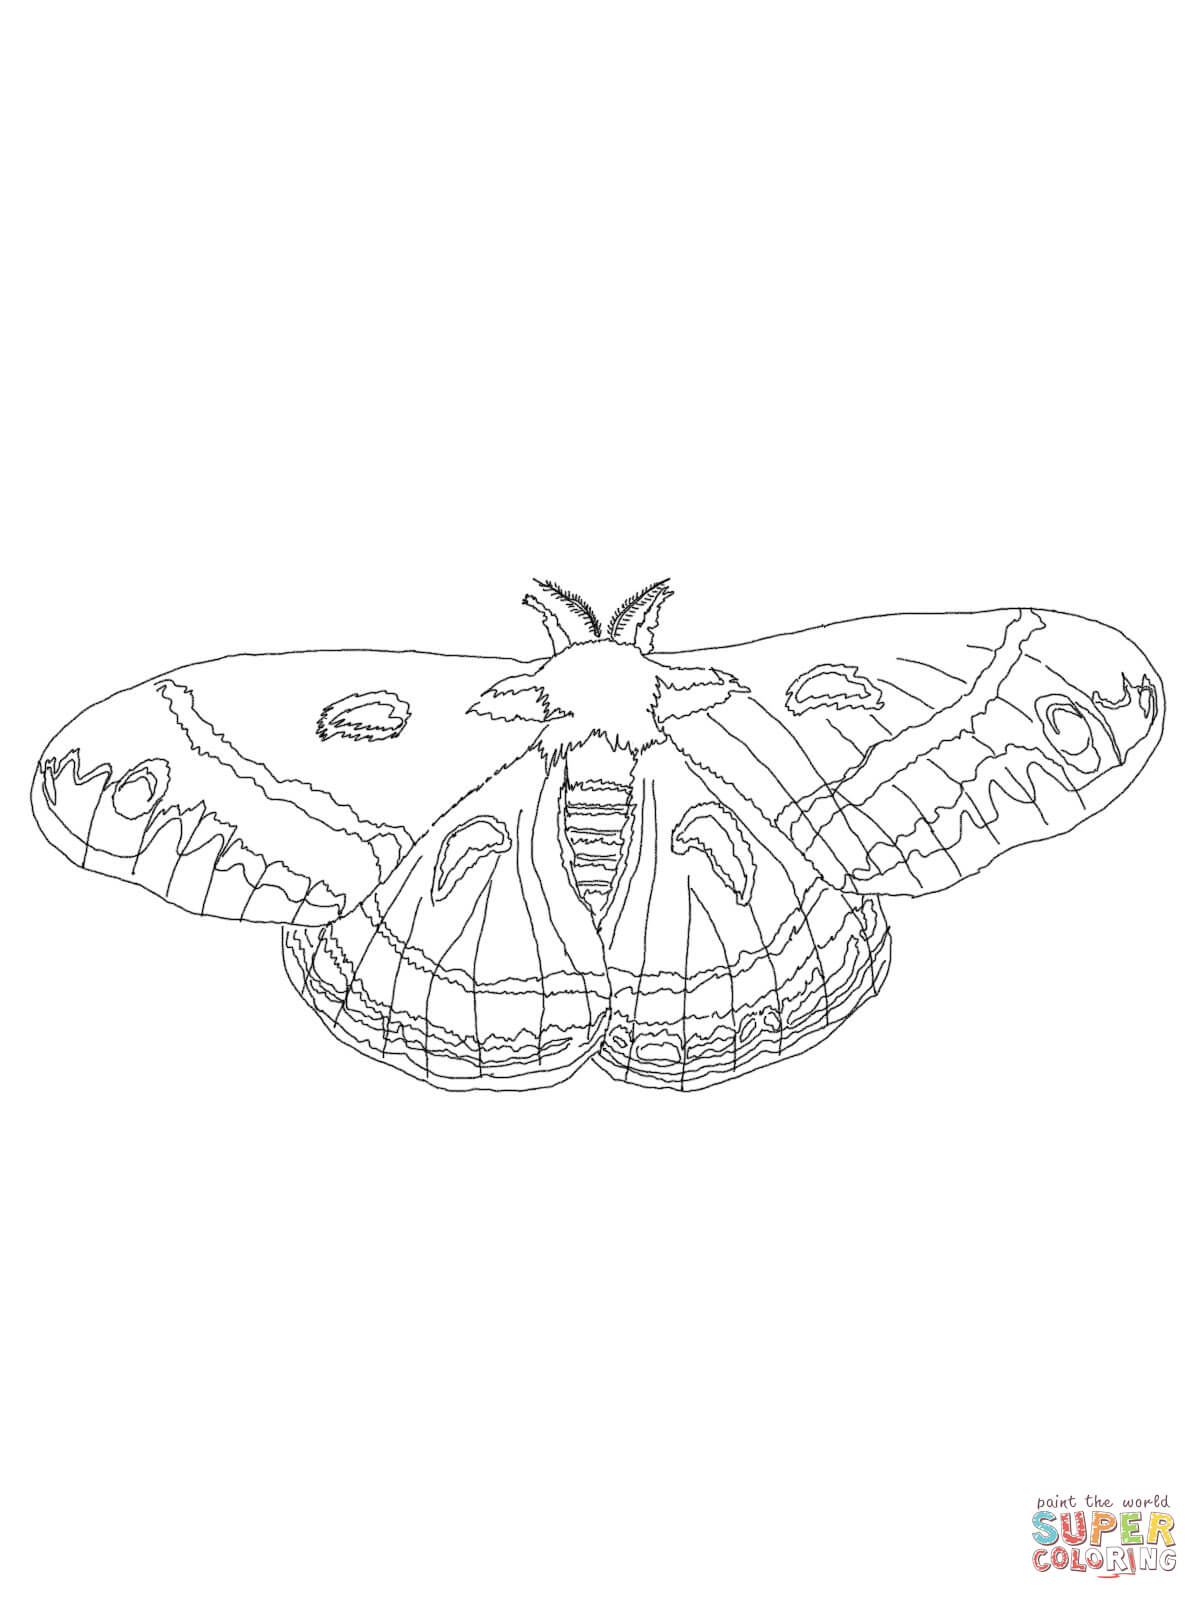 1200x1600 Cecropia Moth Coloring Page Free Printable Coloring Pages